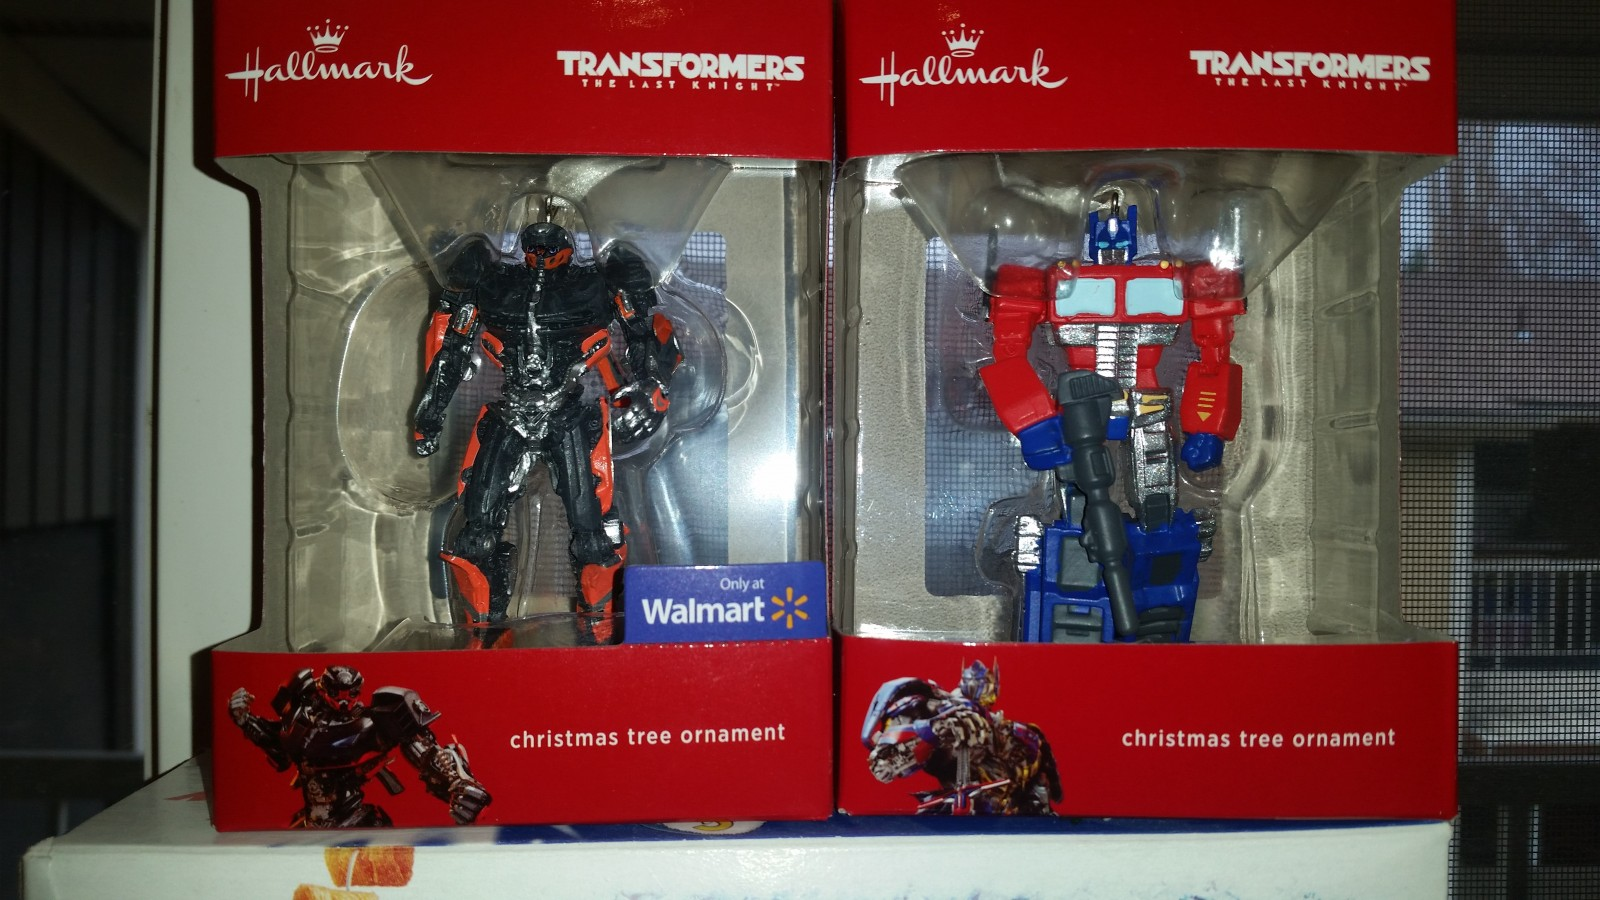 Transformers News: Hallmark Hot Rod and Optimus Prime Ornaments Found at Retail (Plus Packaging Variant)